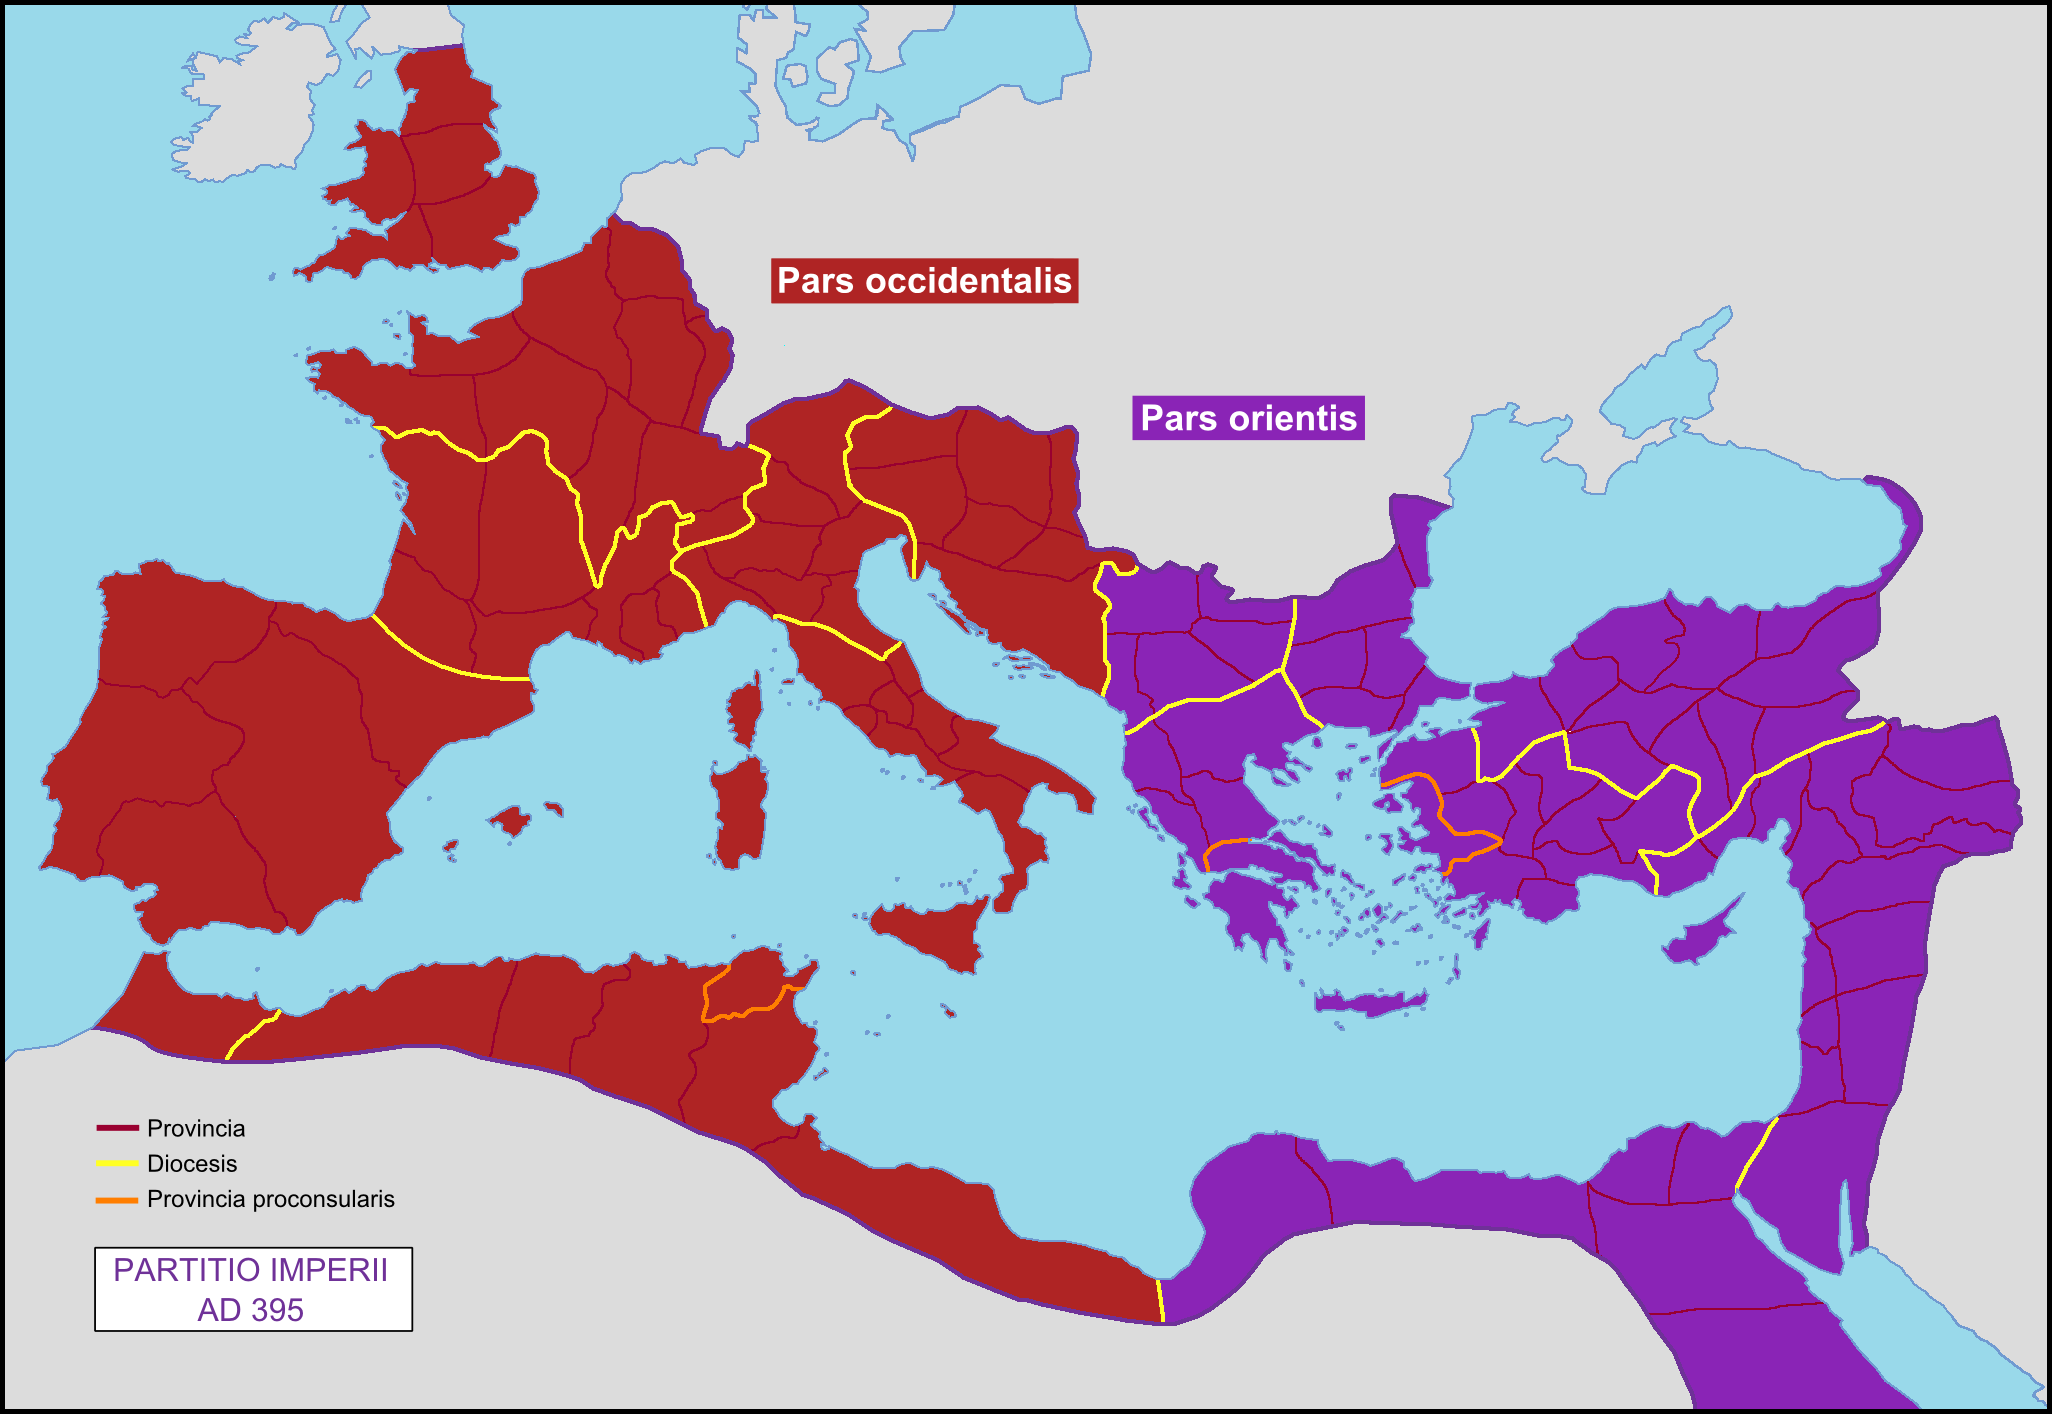 Partition of the Roman Empire into West (Rome) and East (Turkey